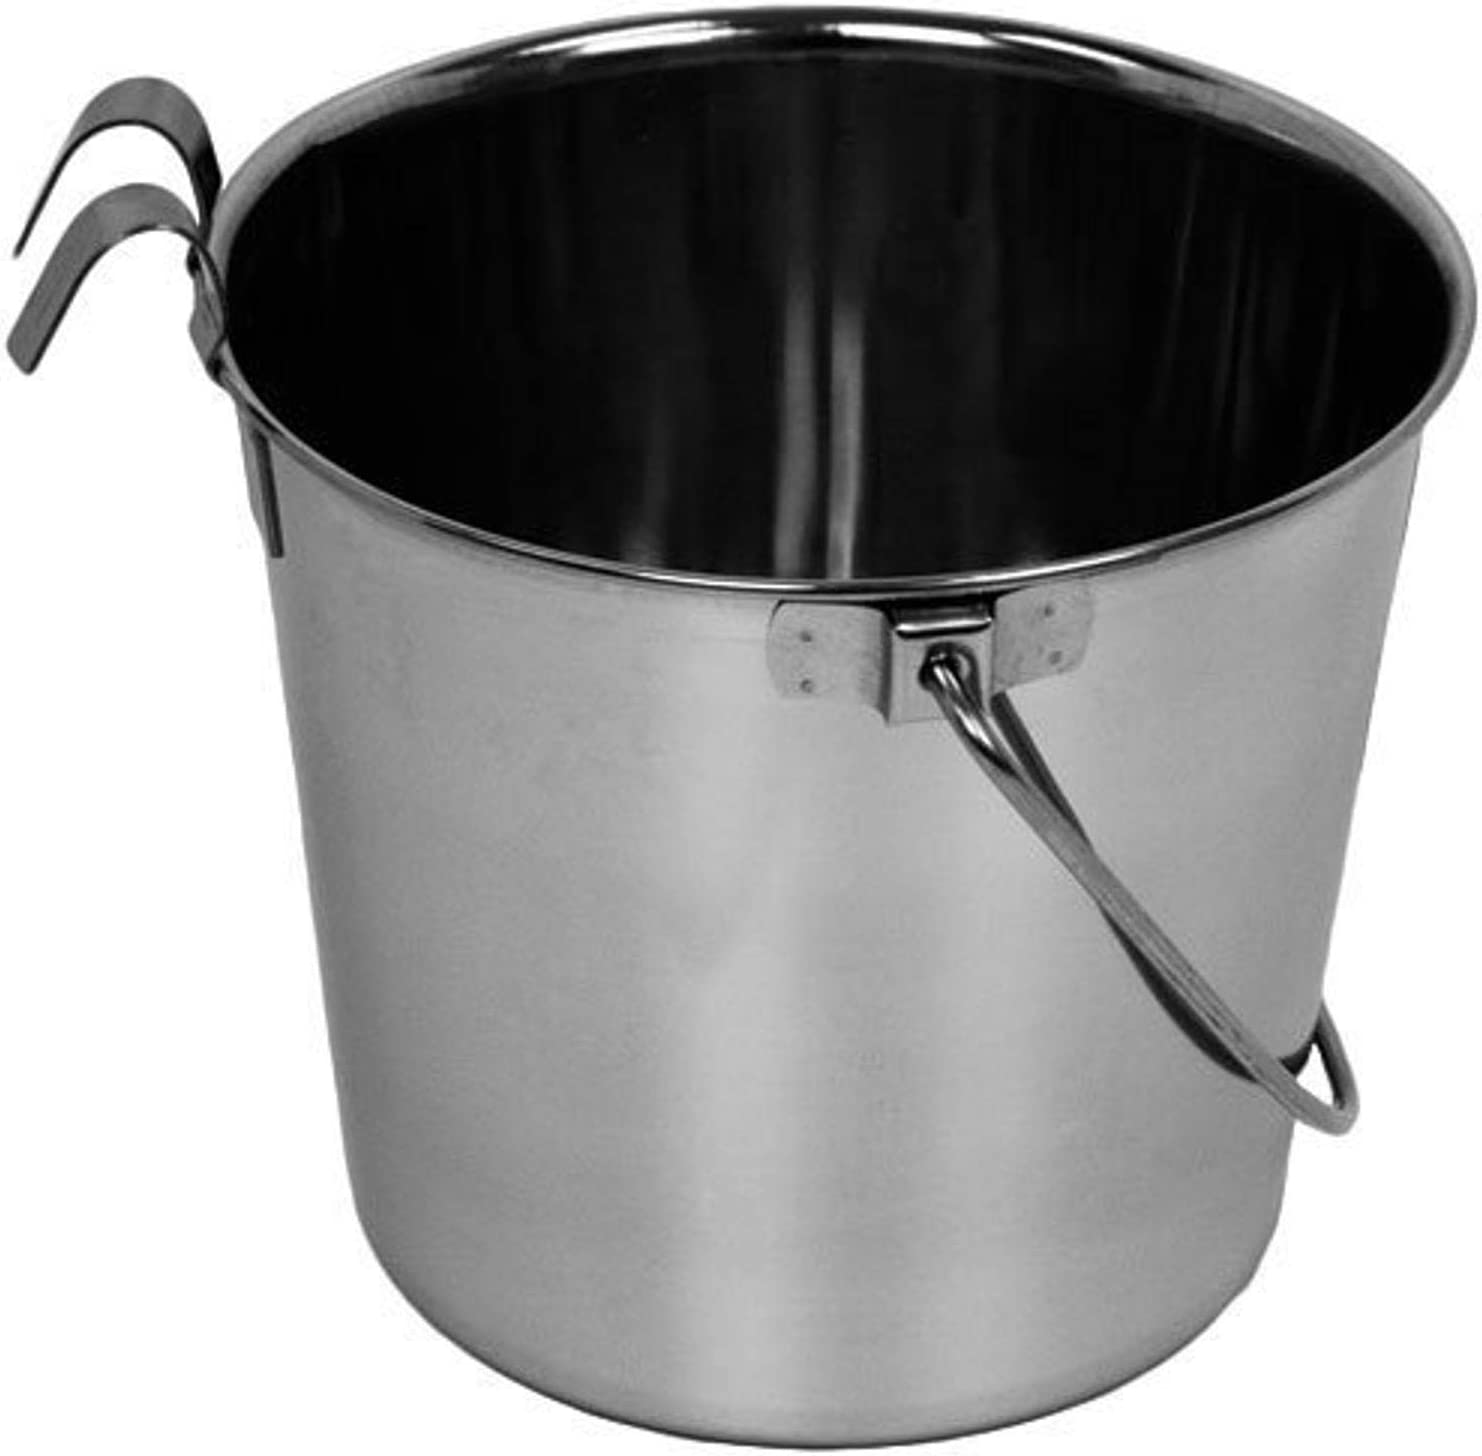 Advance Pet Products Heavy Stainless Steel Flat Side Bucket with Hook